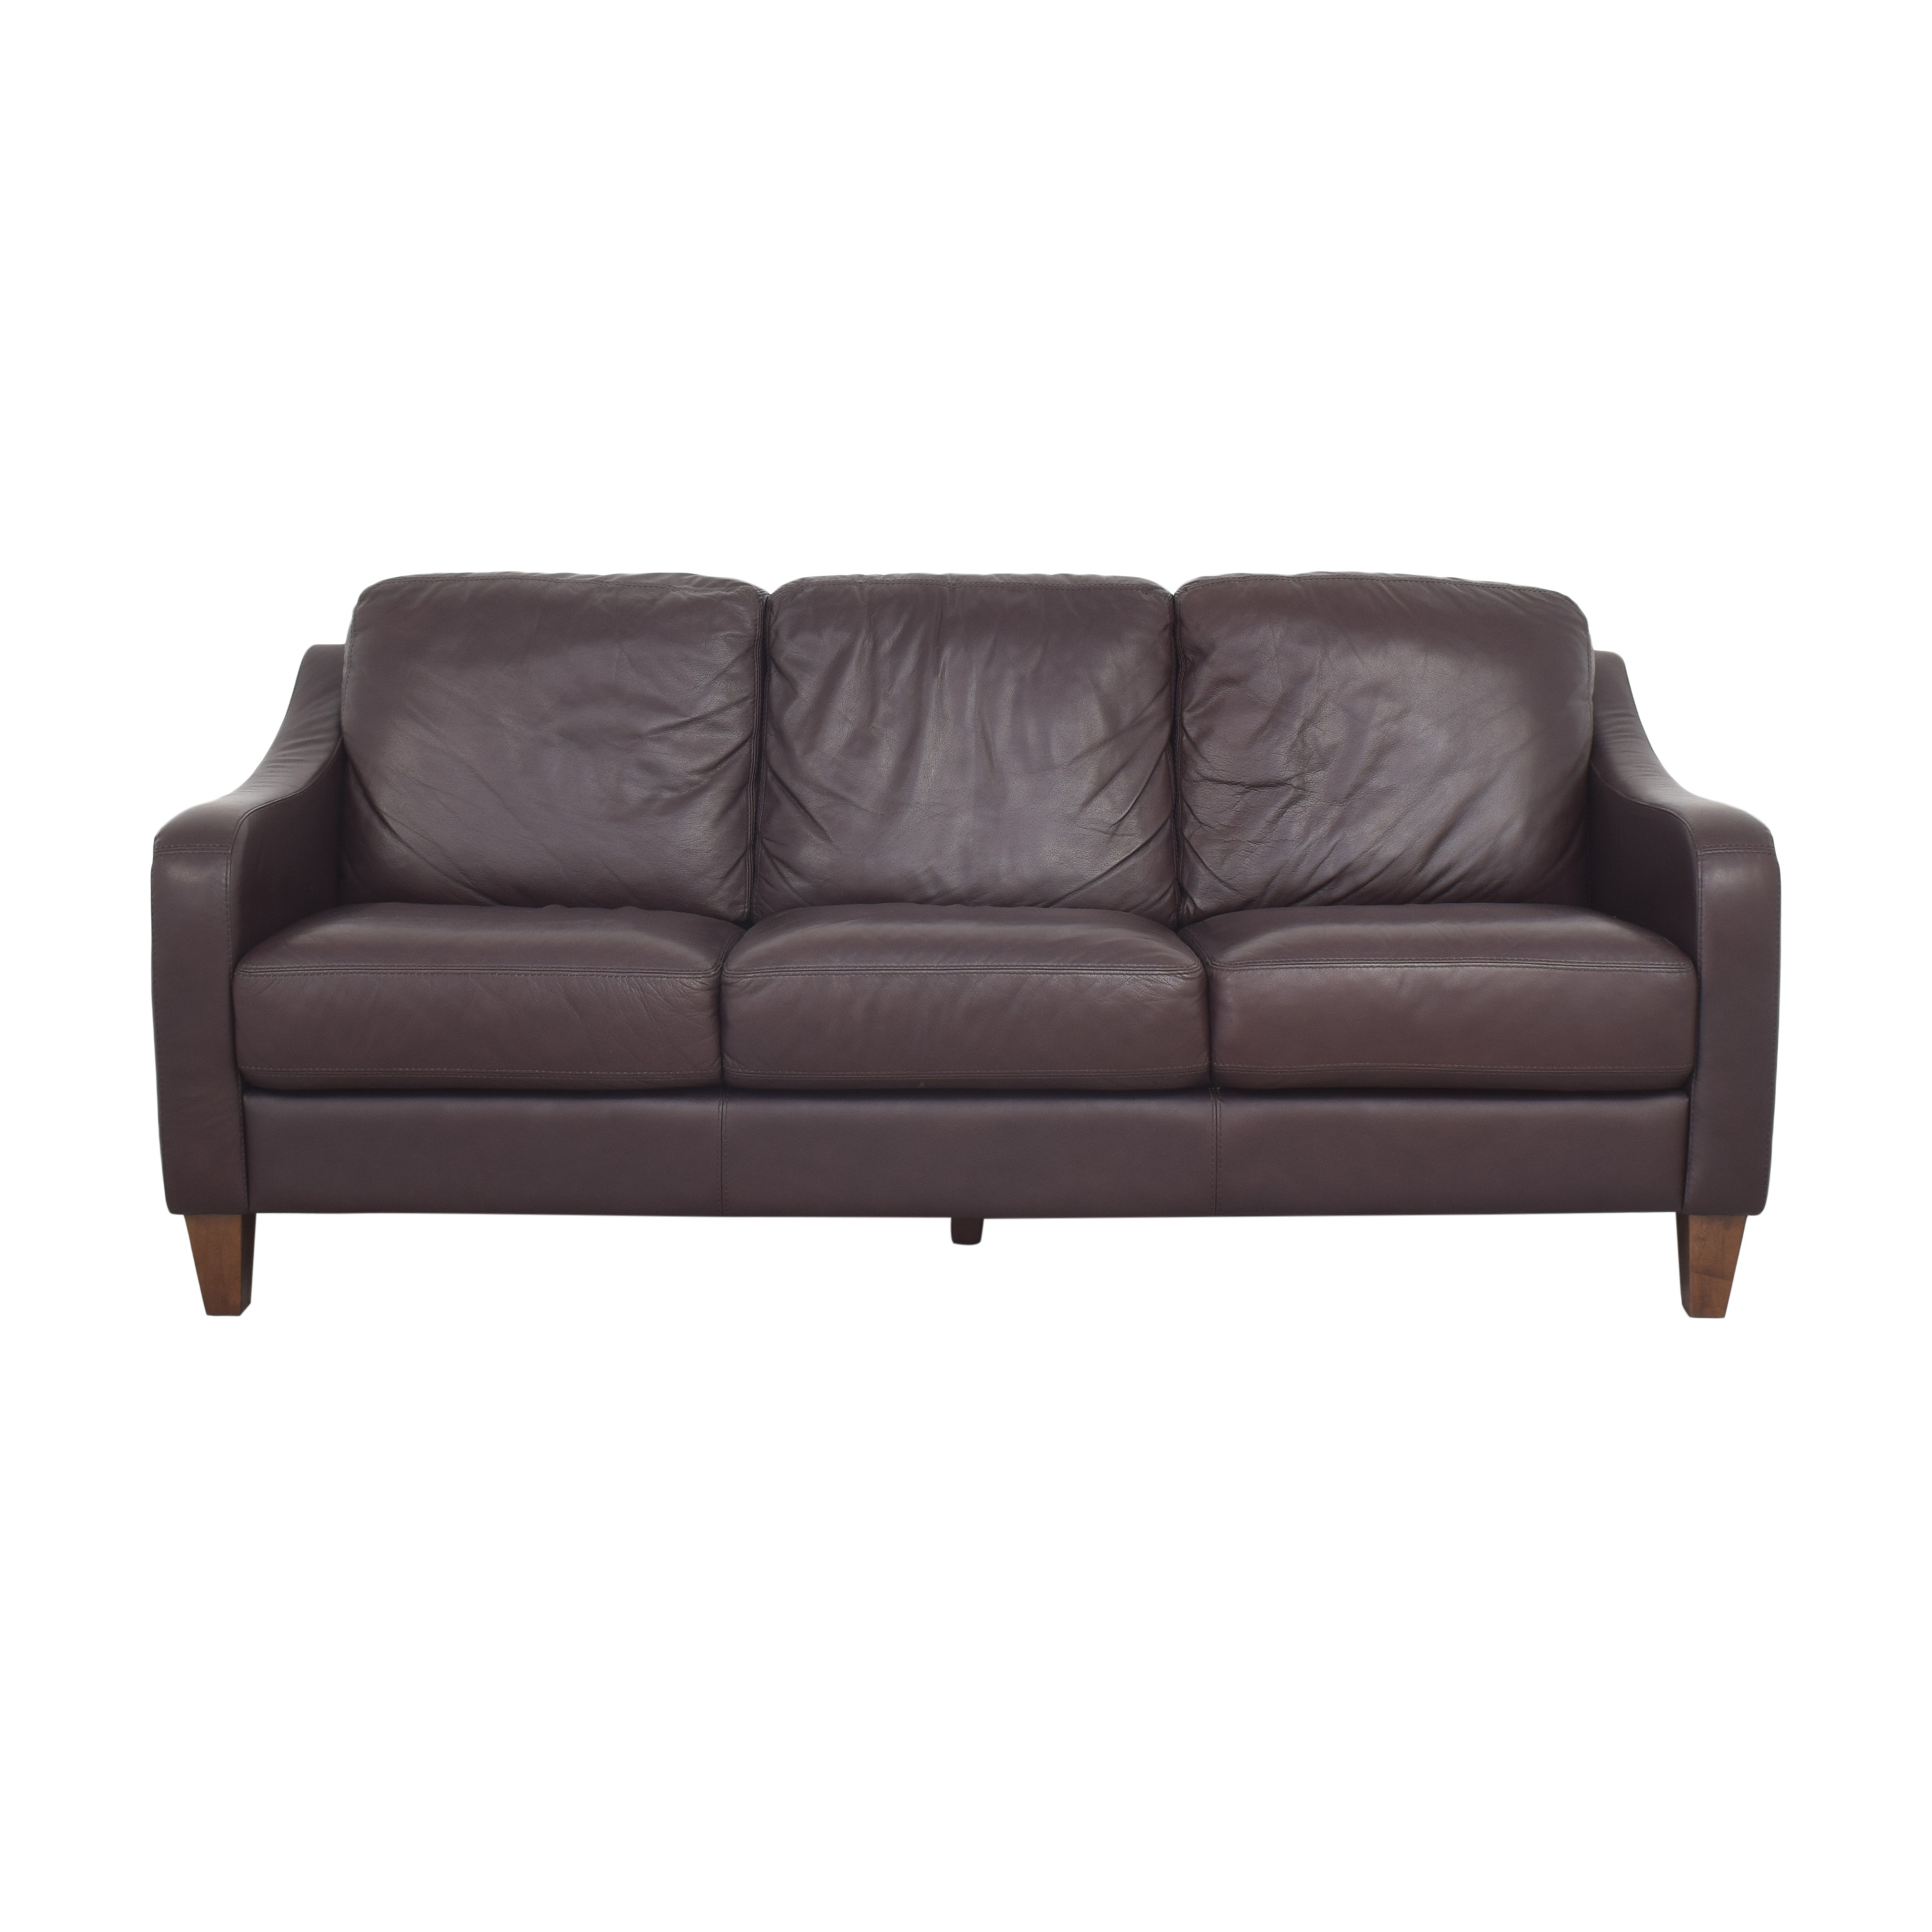 Chateau d'Ax Chateau d'Ax Slope Arm Sofa brown